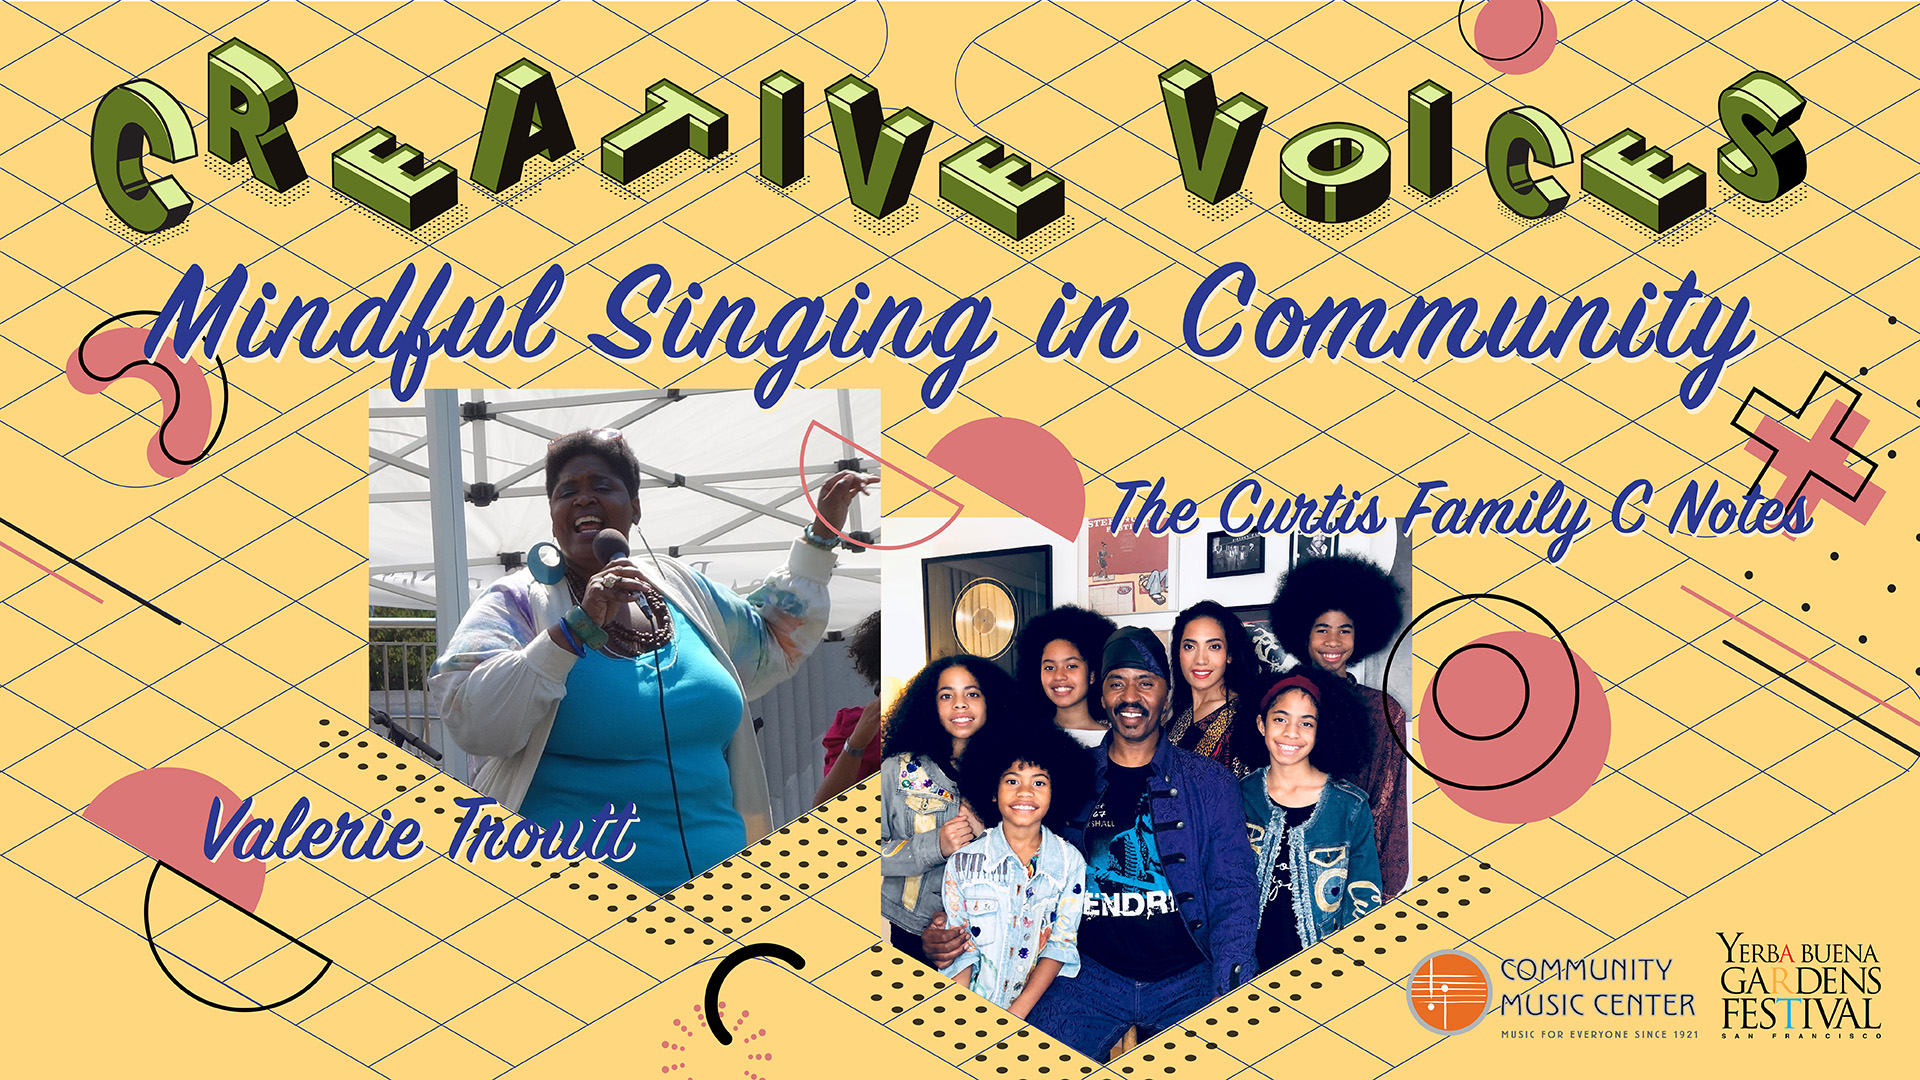 Creative Voices graphic featureing two photos. One photos with Valerie Troutt, singing into a microphone outdoors. The other photo shows seven members of the Curtis Family C Notes smiling.